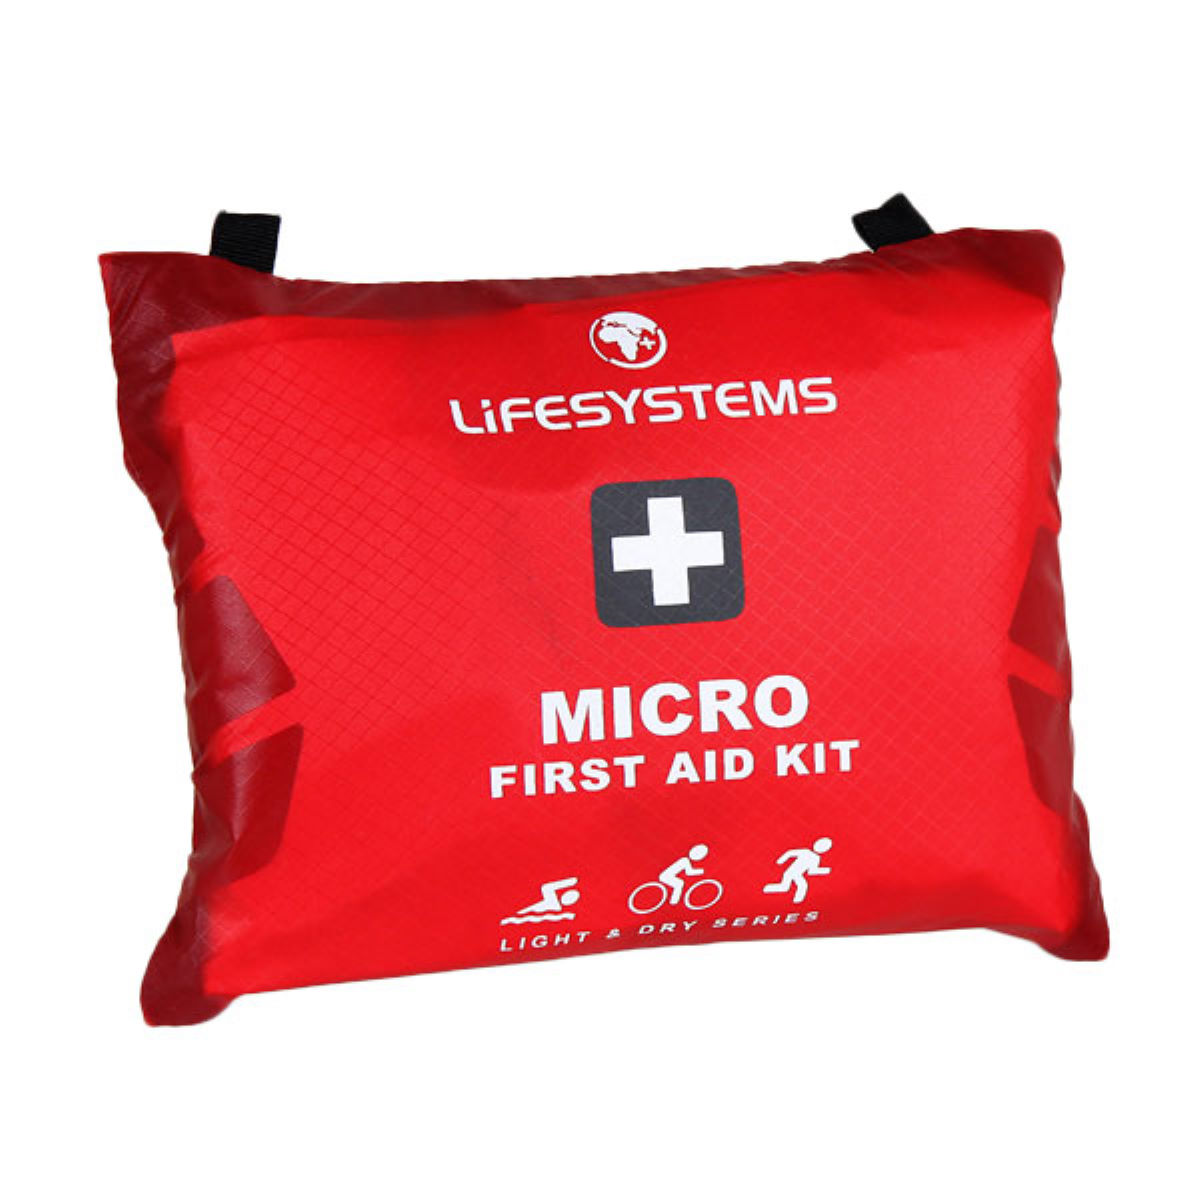 Lifesystems Lifesystems Light and Dry Micro First Aid Kit   First Aid Kits